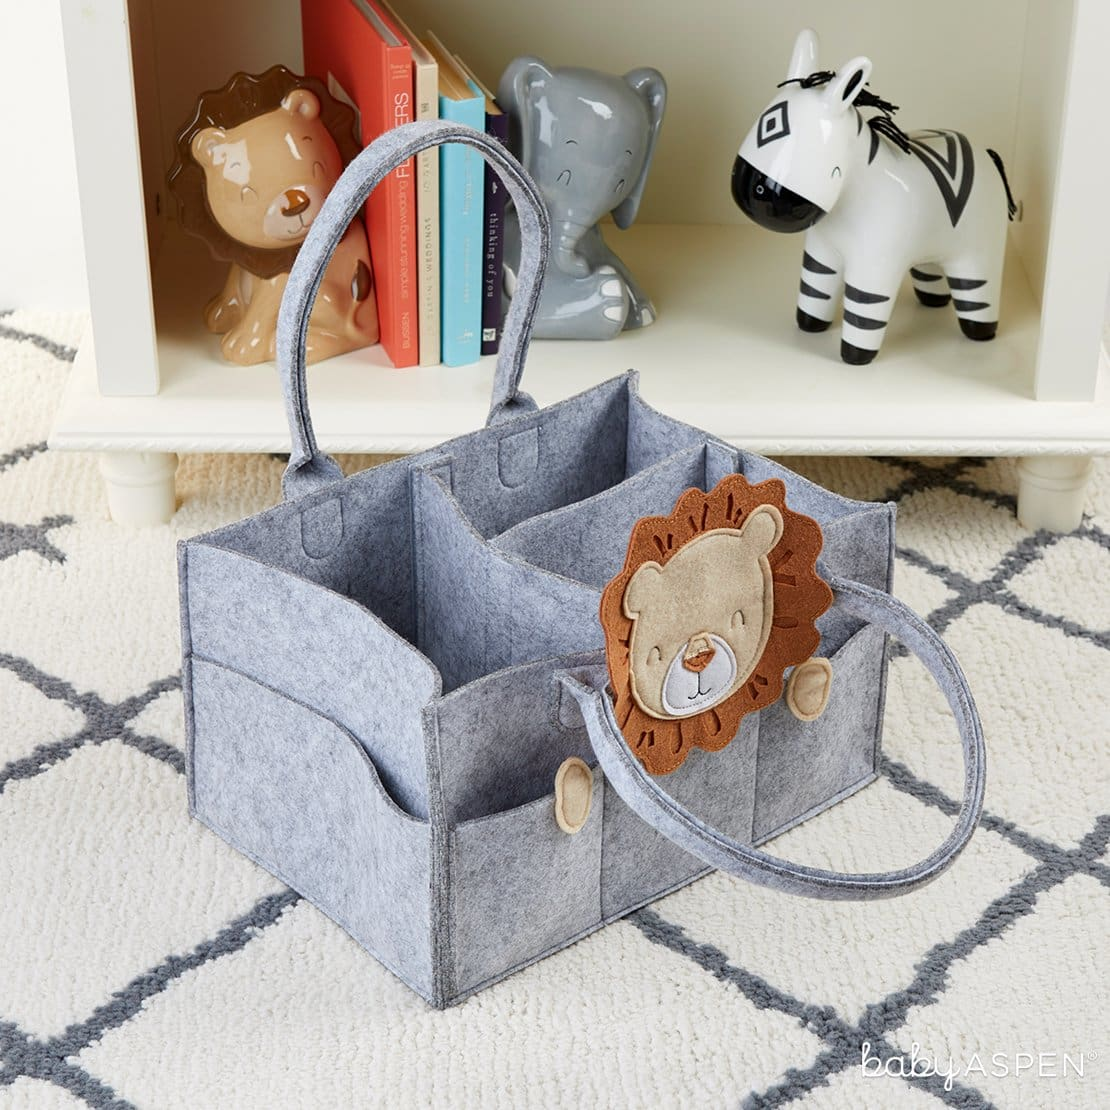 Lion Diaper Caddy Organizer | Cribspiration: A Boho Chic Safari Nursery | Baby Aspen